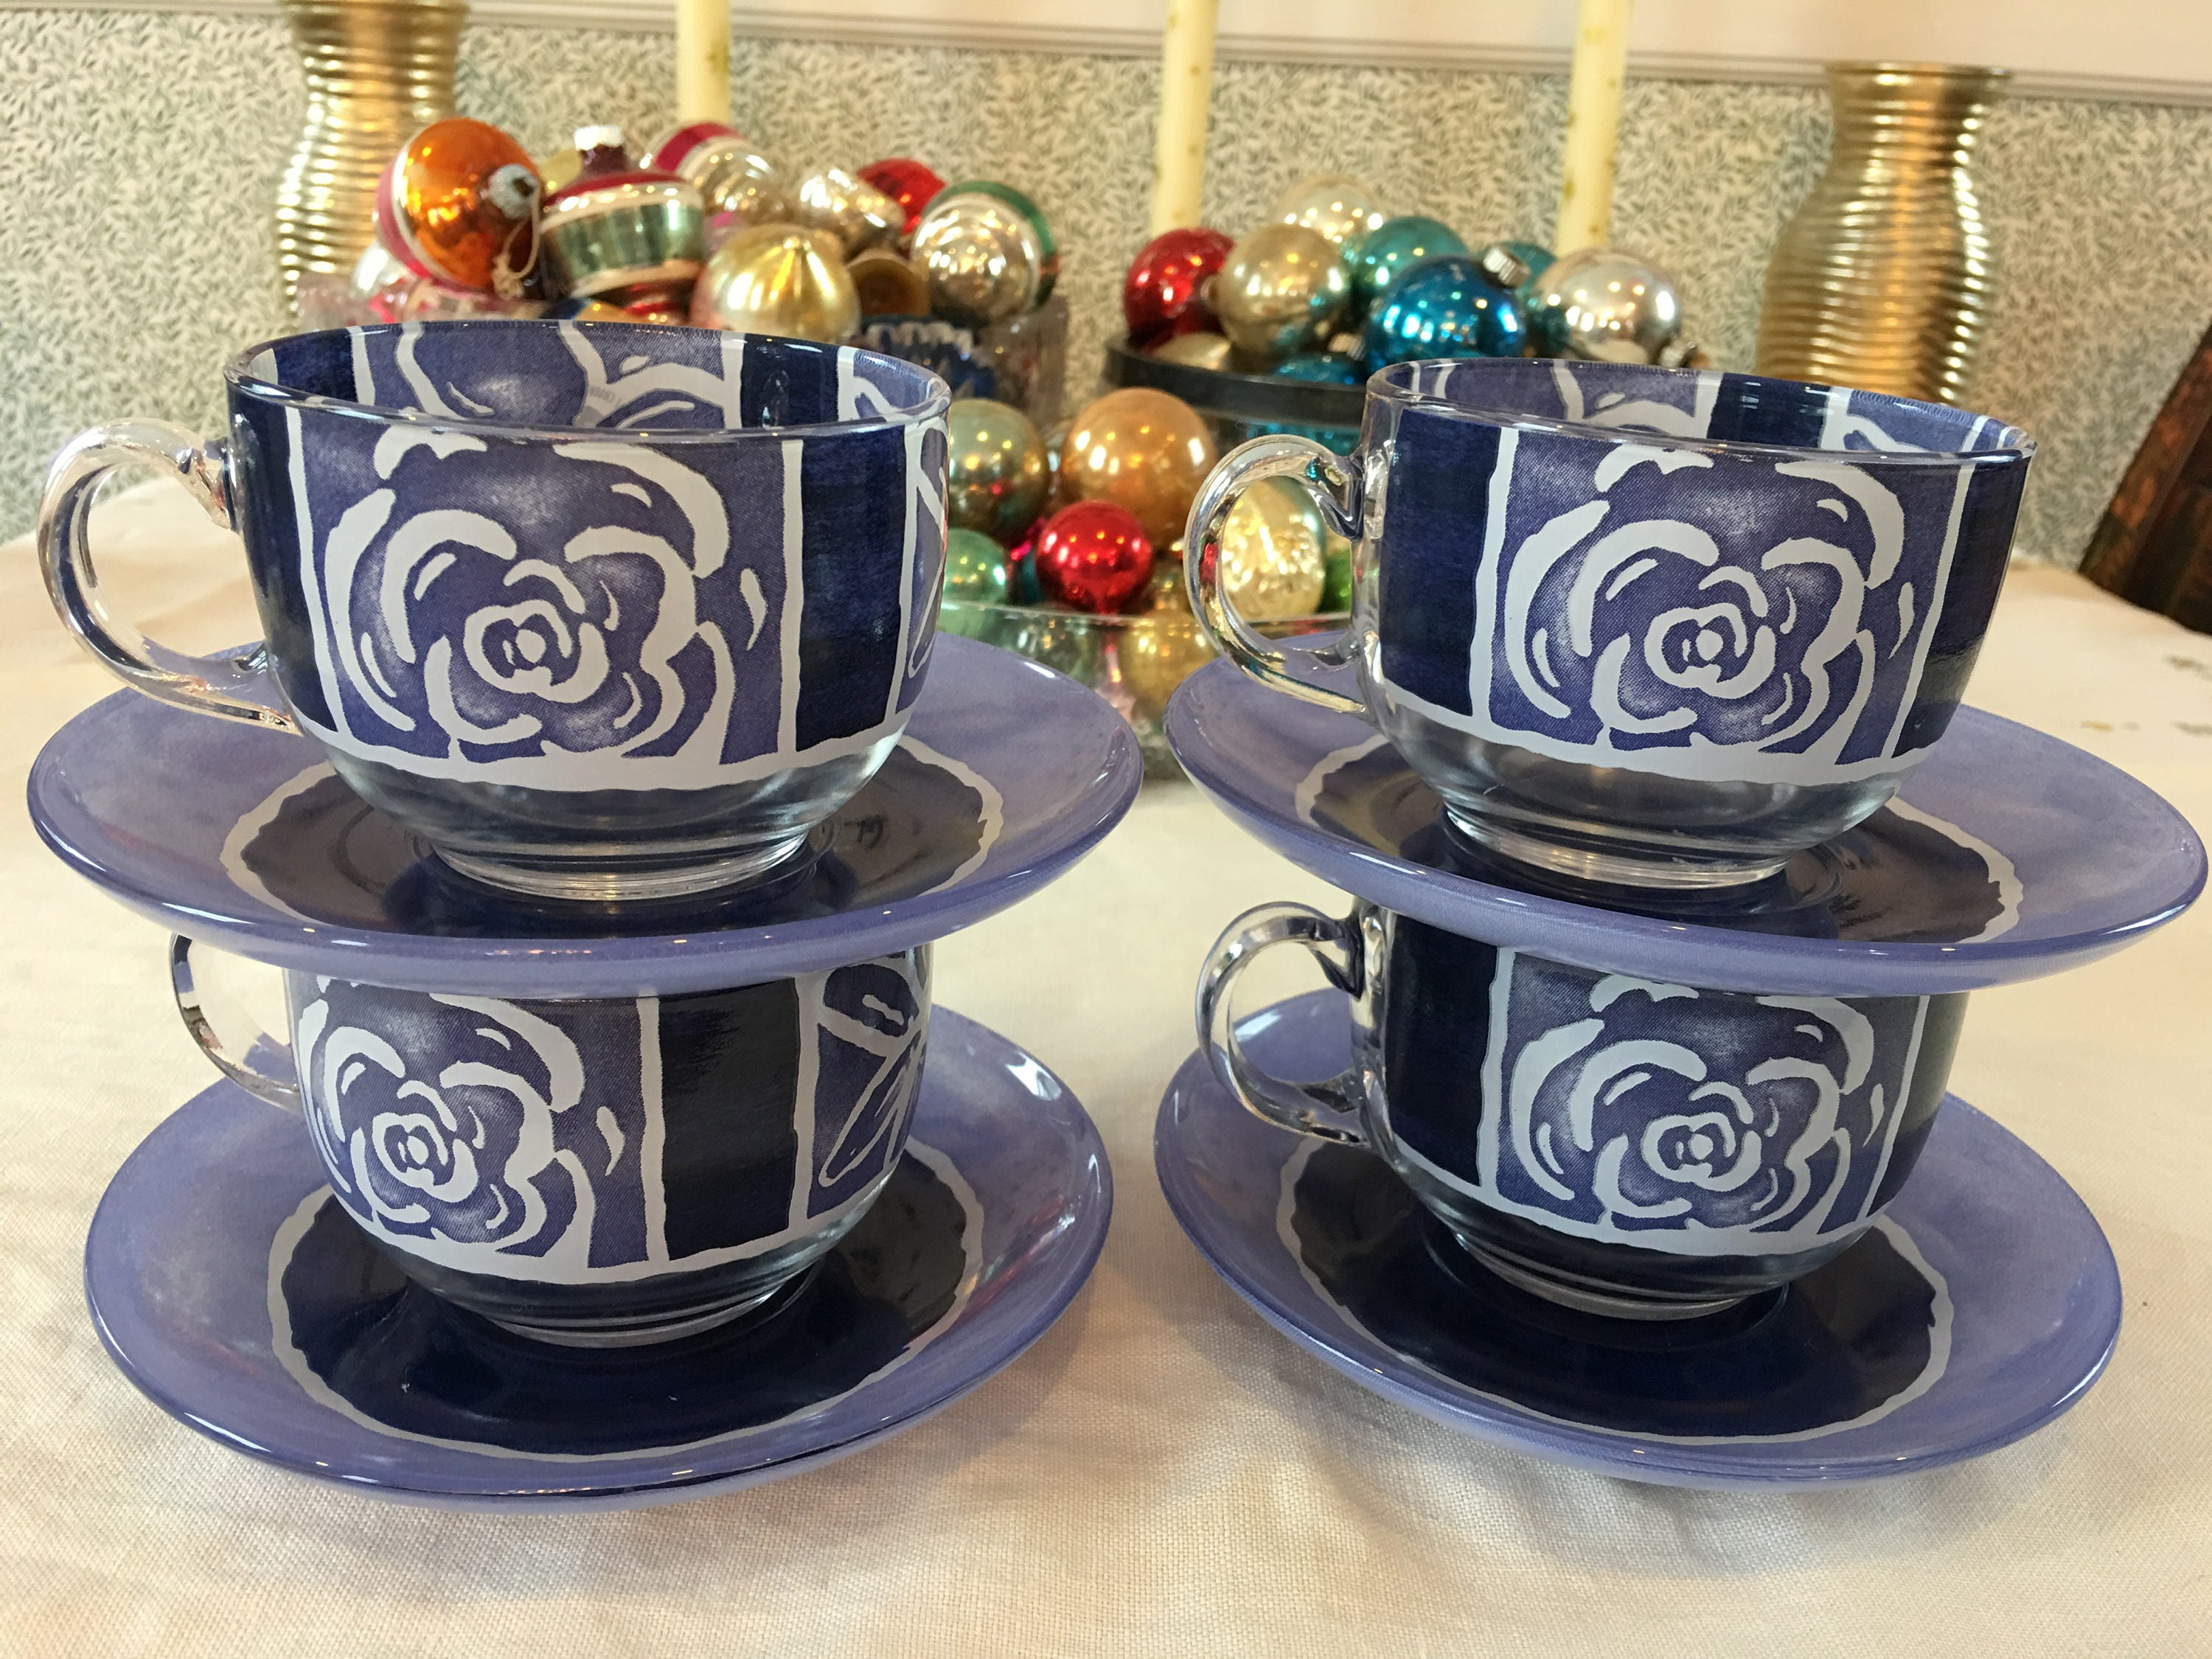 gallery photo gallery photo gallery photo ... & Arc Arcoroc France Purple Flowers Glass Cups and Saucers Table Charm ...